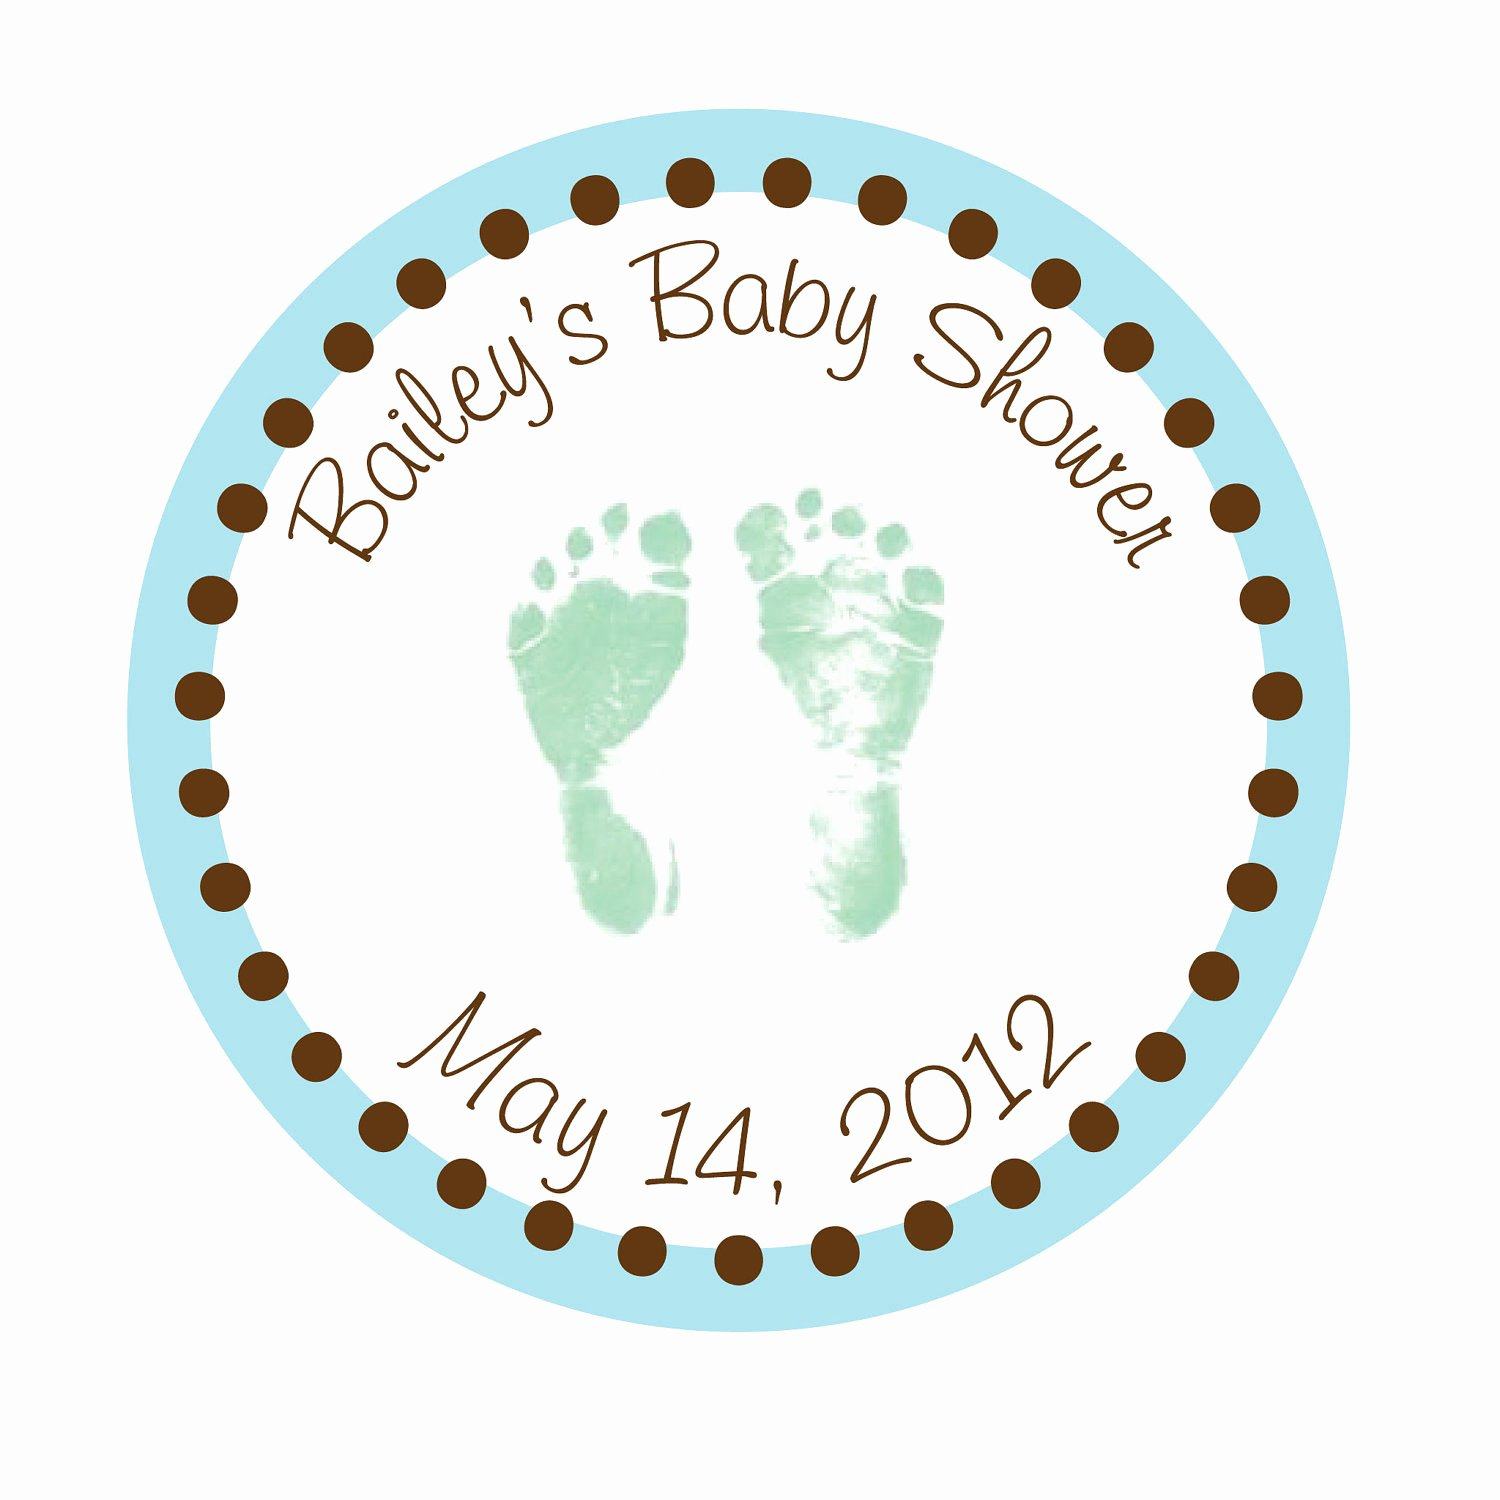 Baby Shower Tags Template Inspirational Personalized Stickers Baby Feet Baby Shower by Simplysweetness